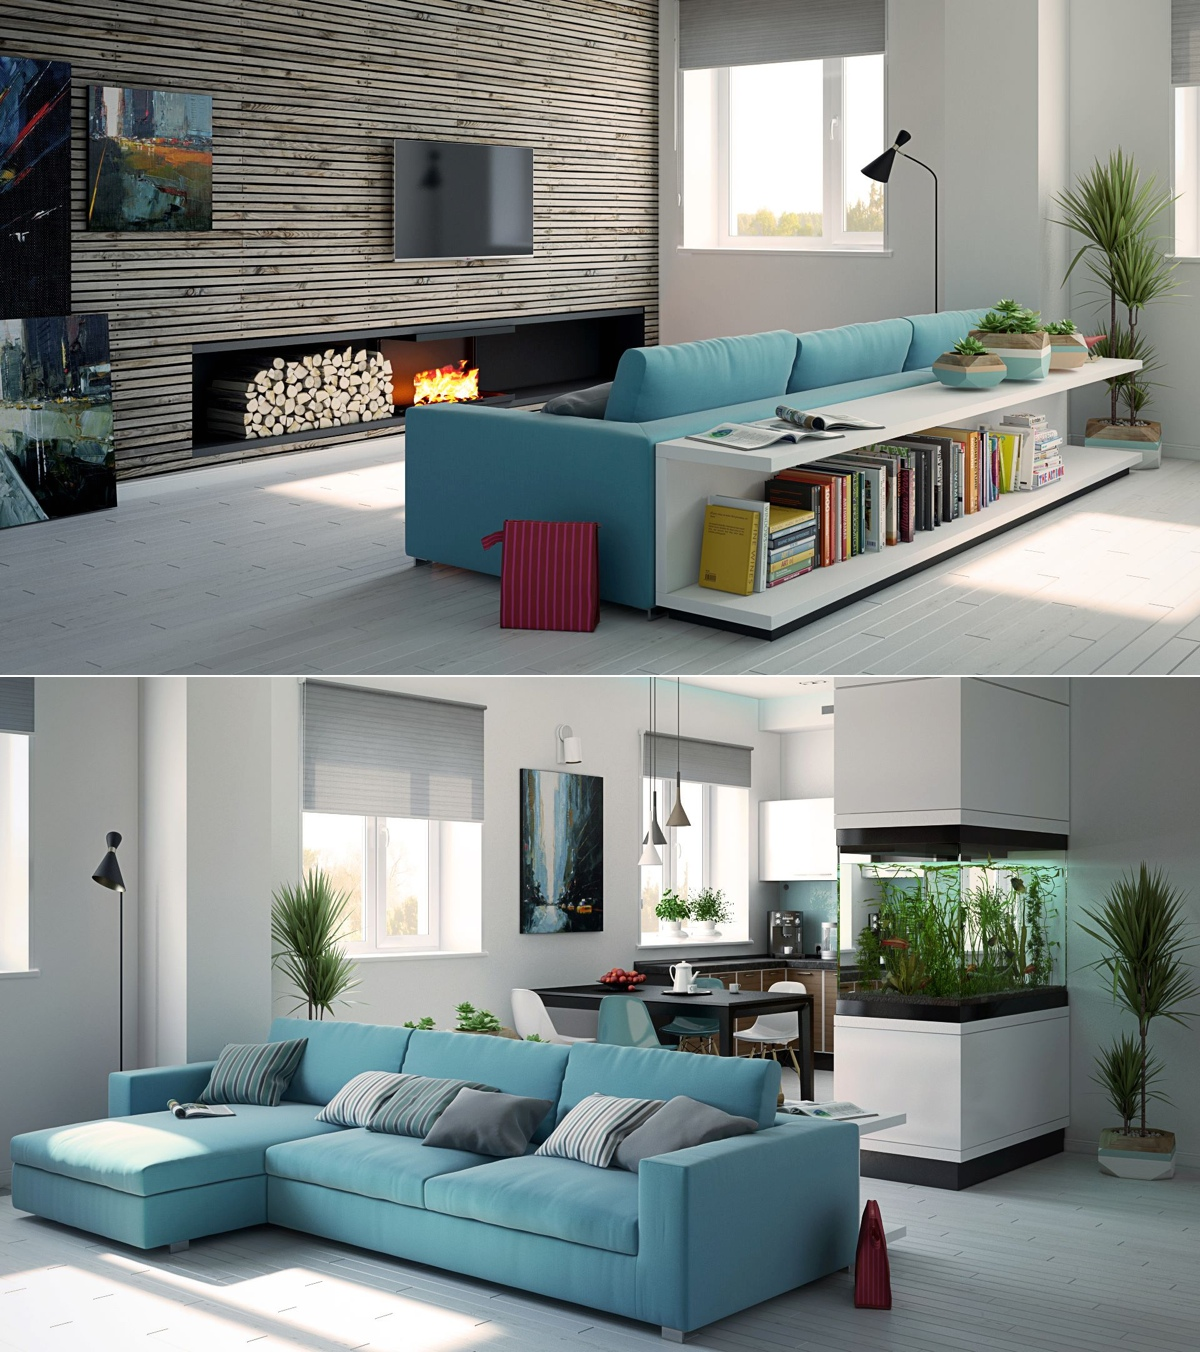 Living Rooms Designs: Awesomely Stylish Urban Living Rooms